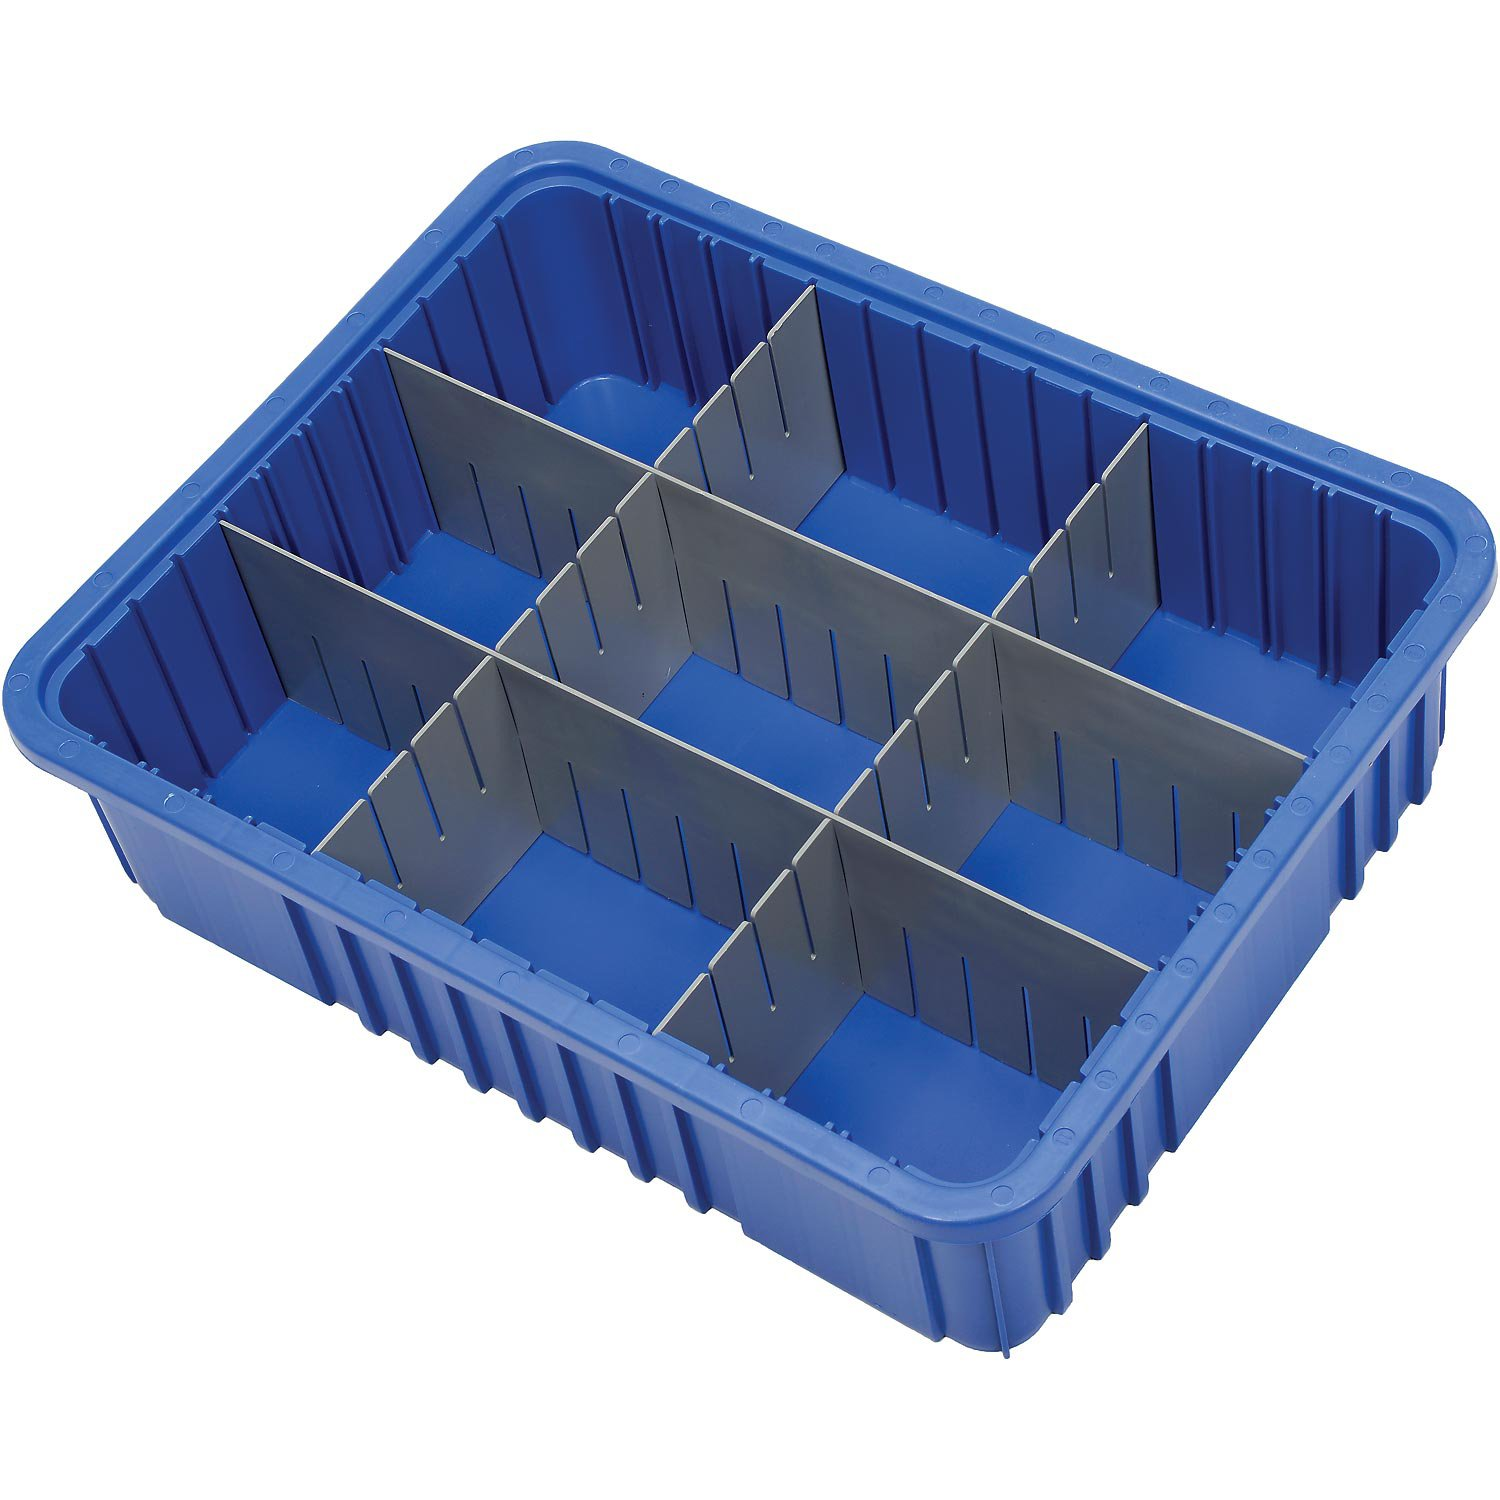 Plastic Dividable Grid Container, 22-1/2''L x 17-1/2''W x 6''H, Blue - Lot of 3